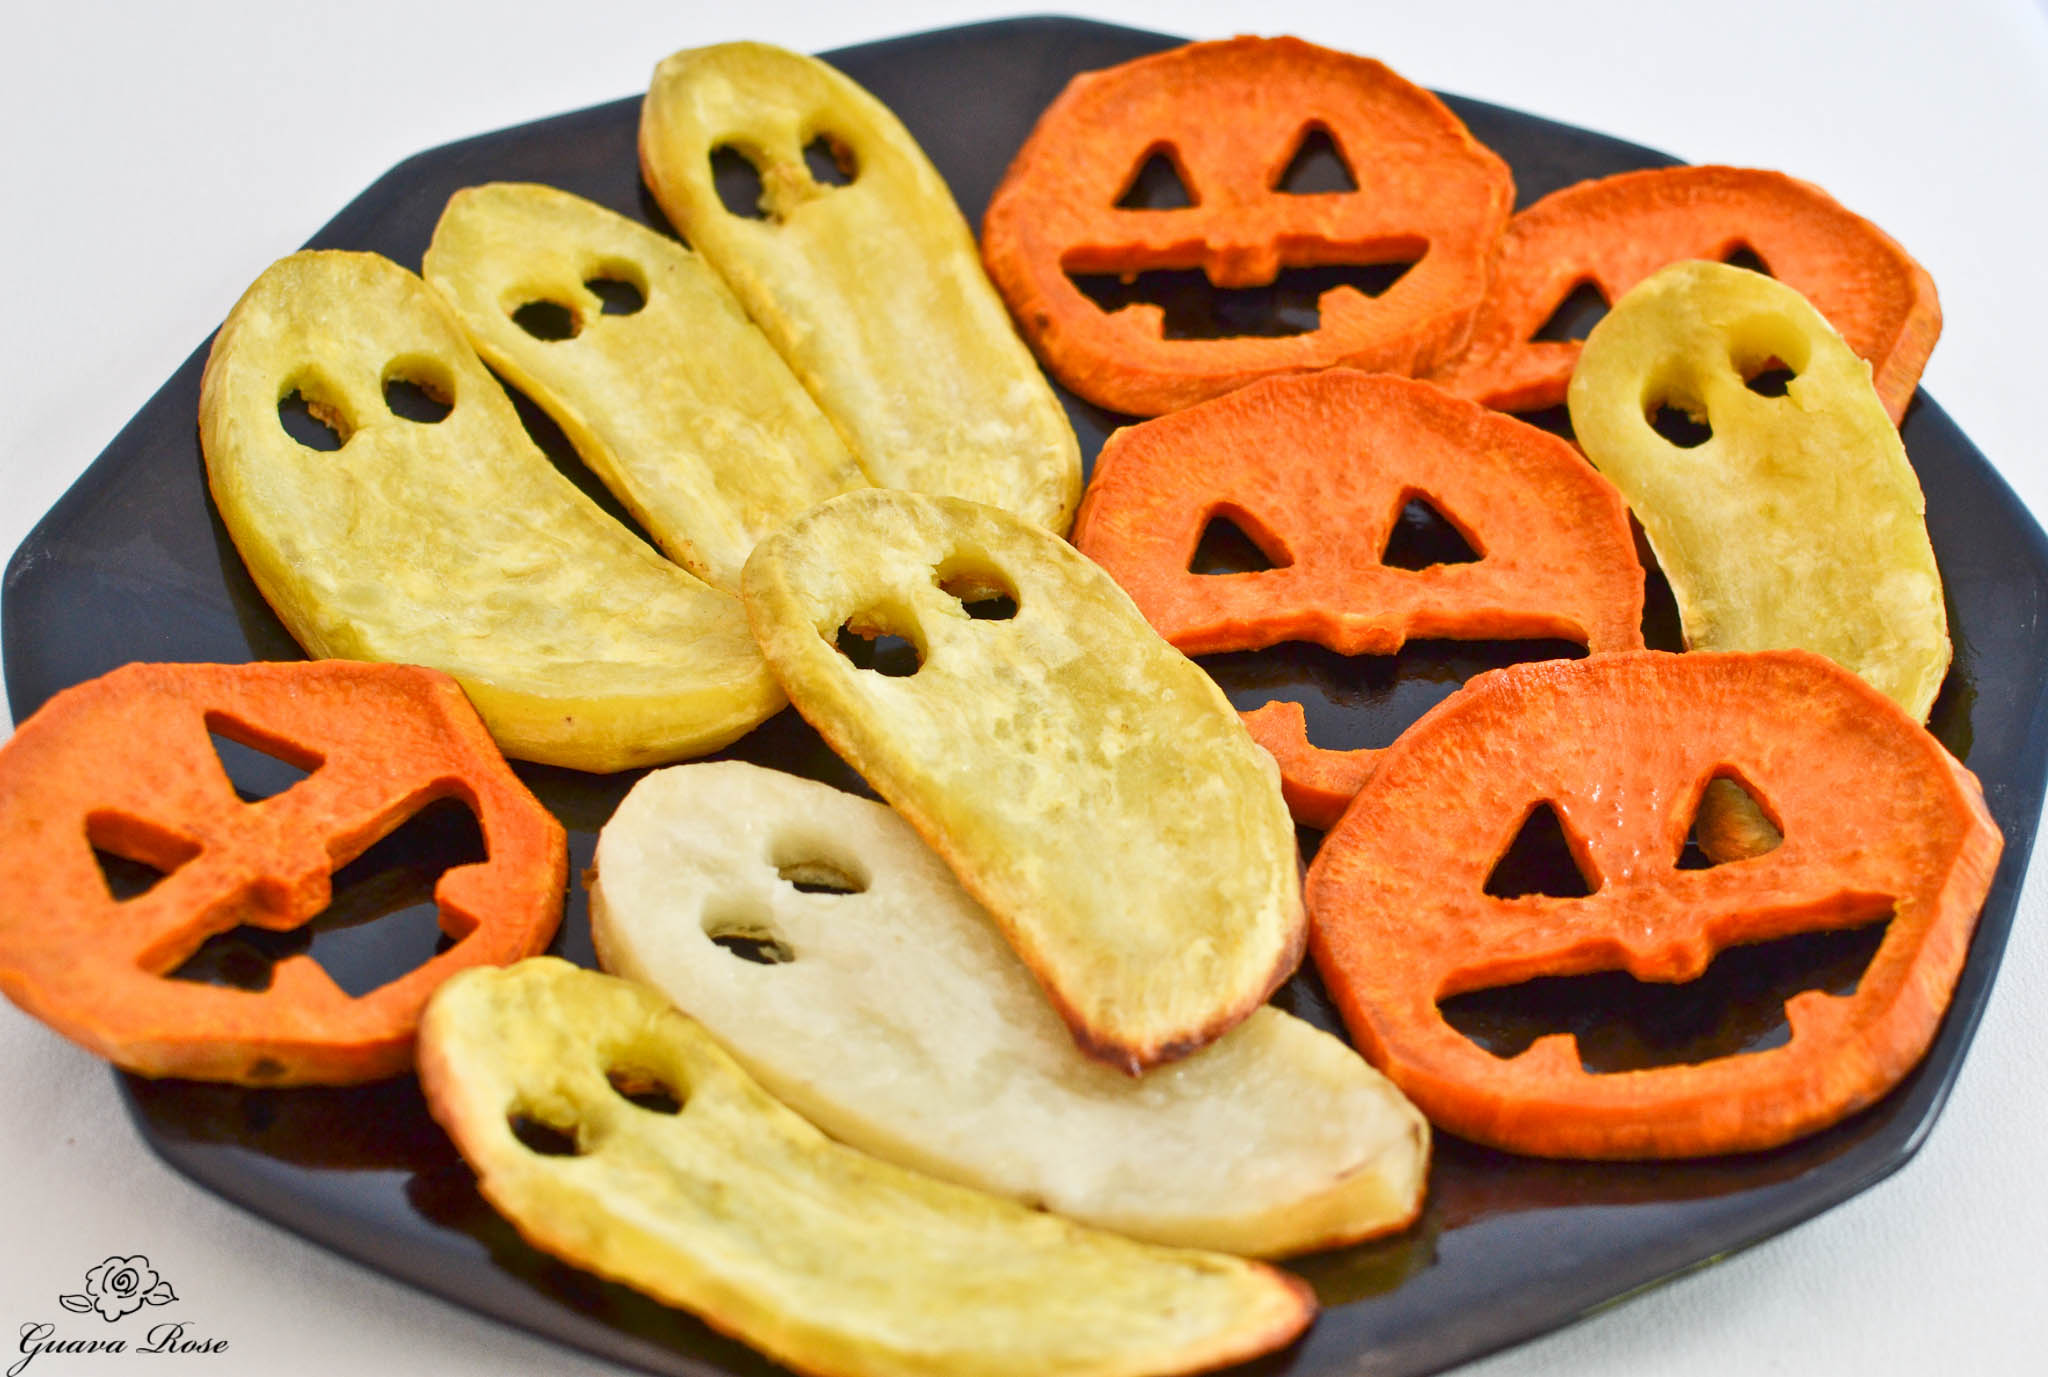 Roasted Sweet potato jack-o-lanterns  and ghosts